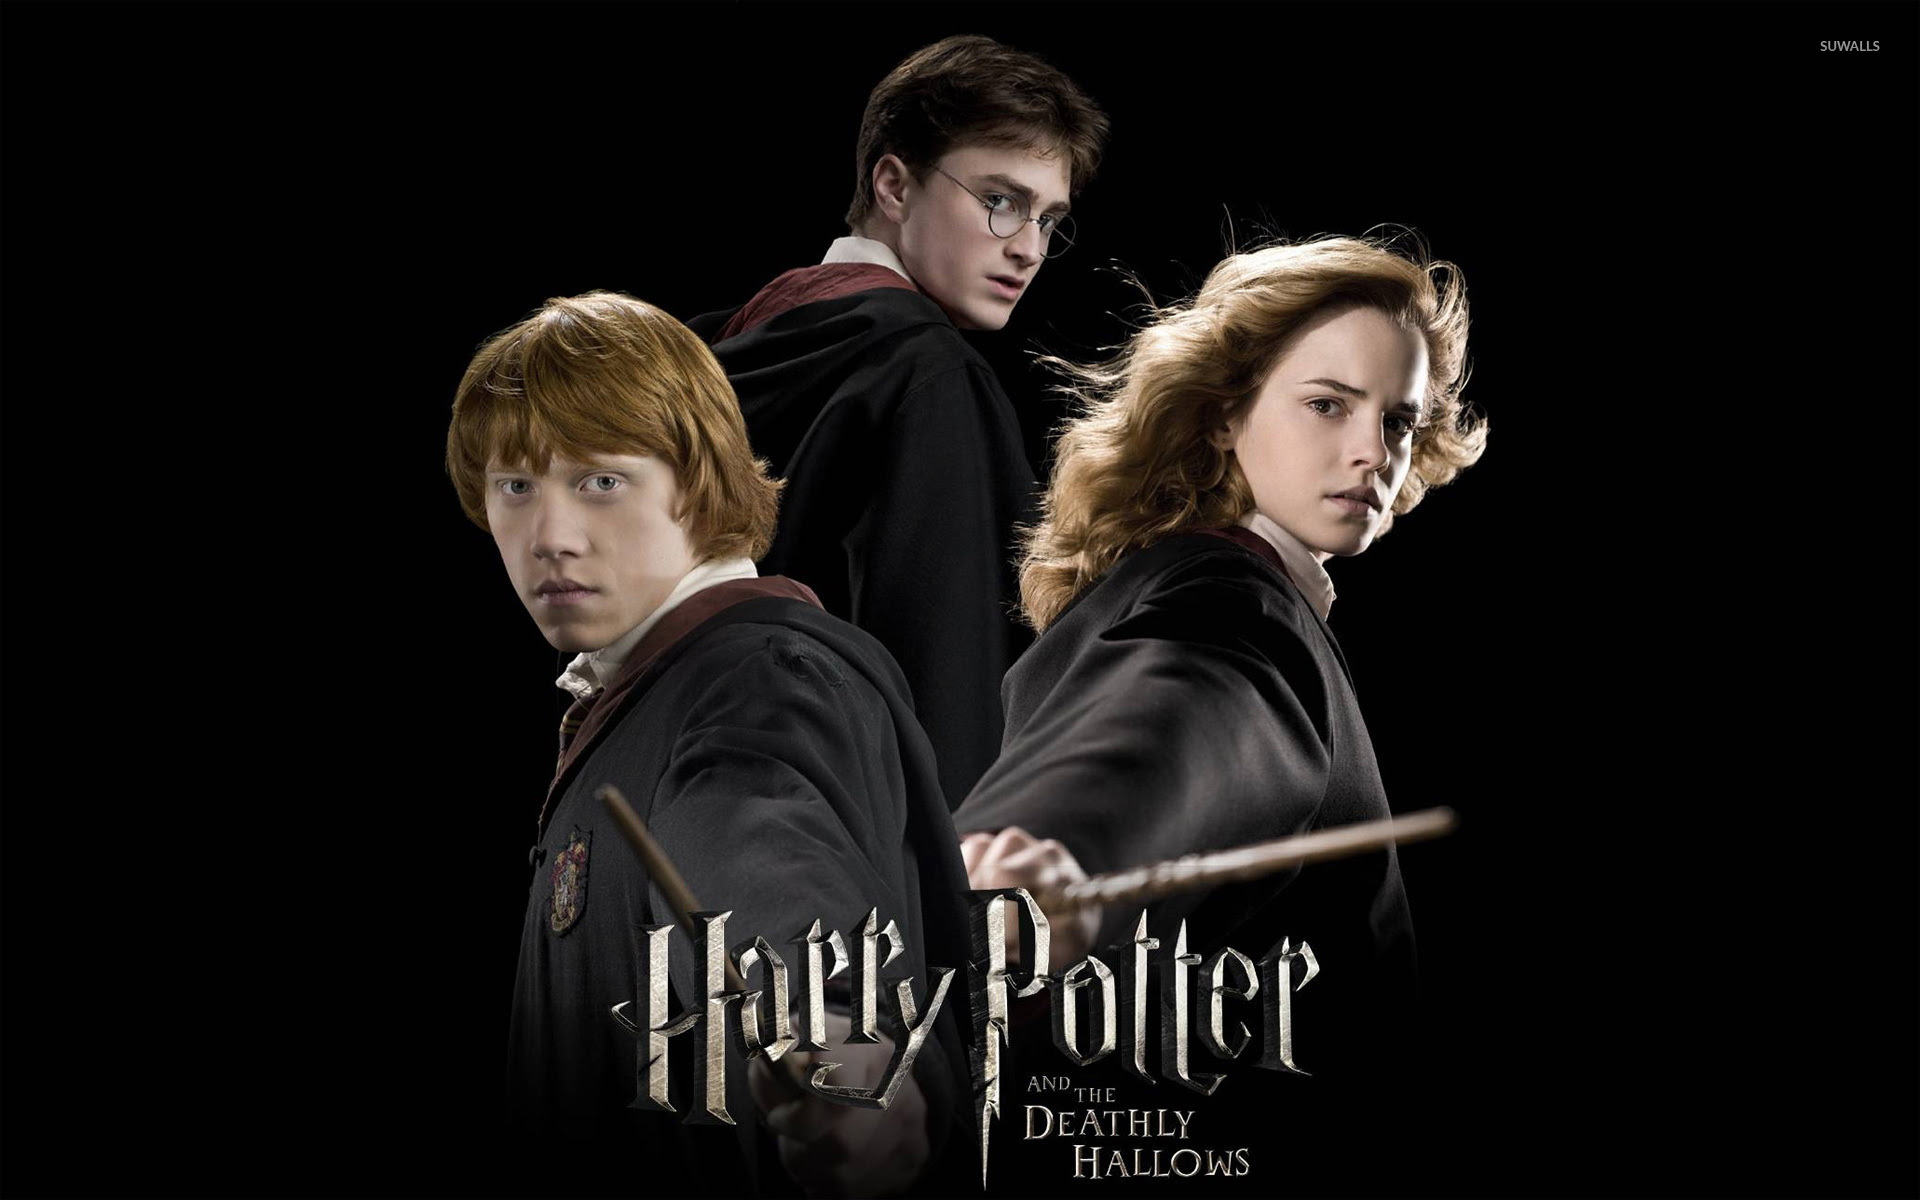 Harry Potter And The Deathly Hallows Wallpaper 493009